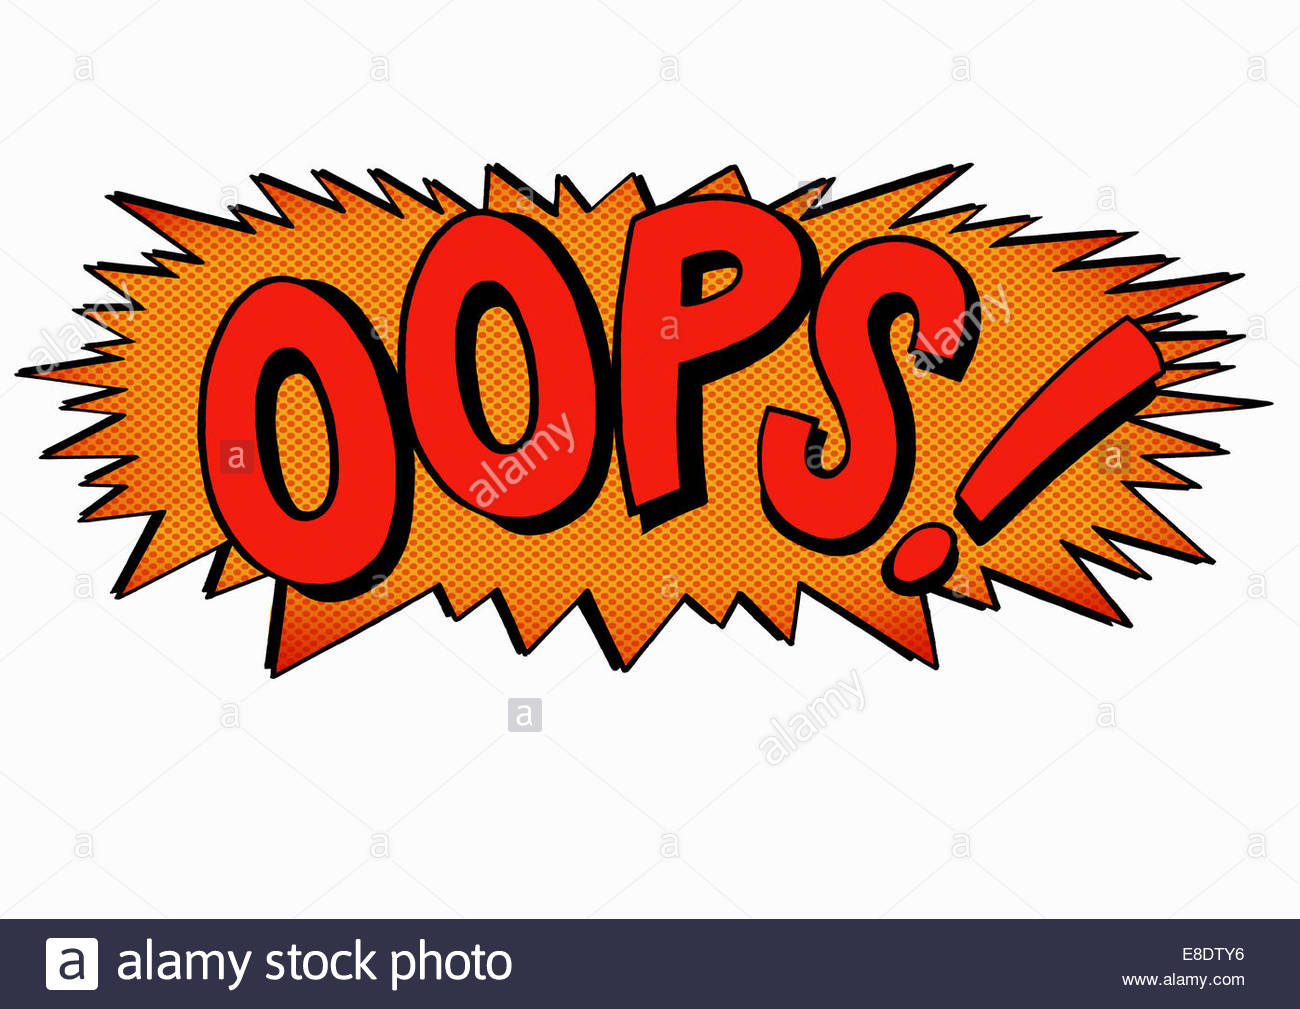 Oops! comic book text - Stock Image